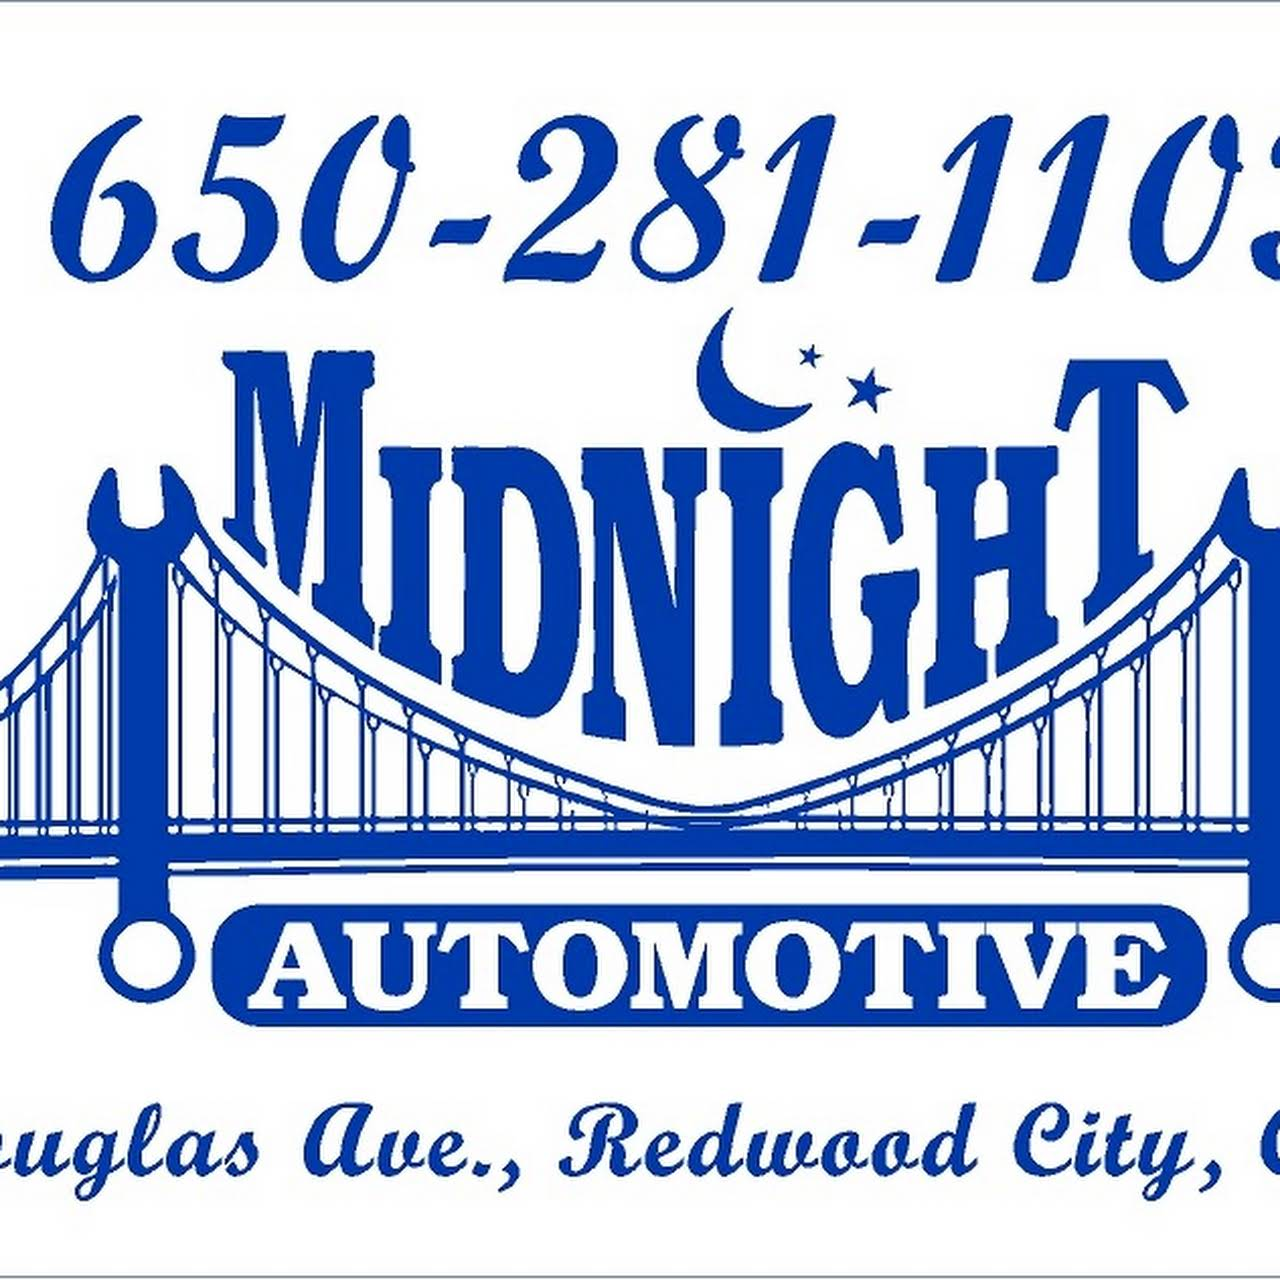 Mid-night Automotive - Trailer Hitch Supplier in Redwood City